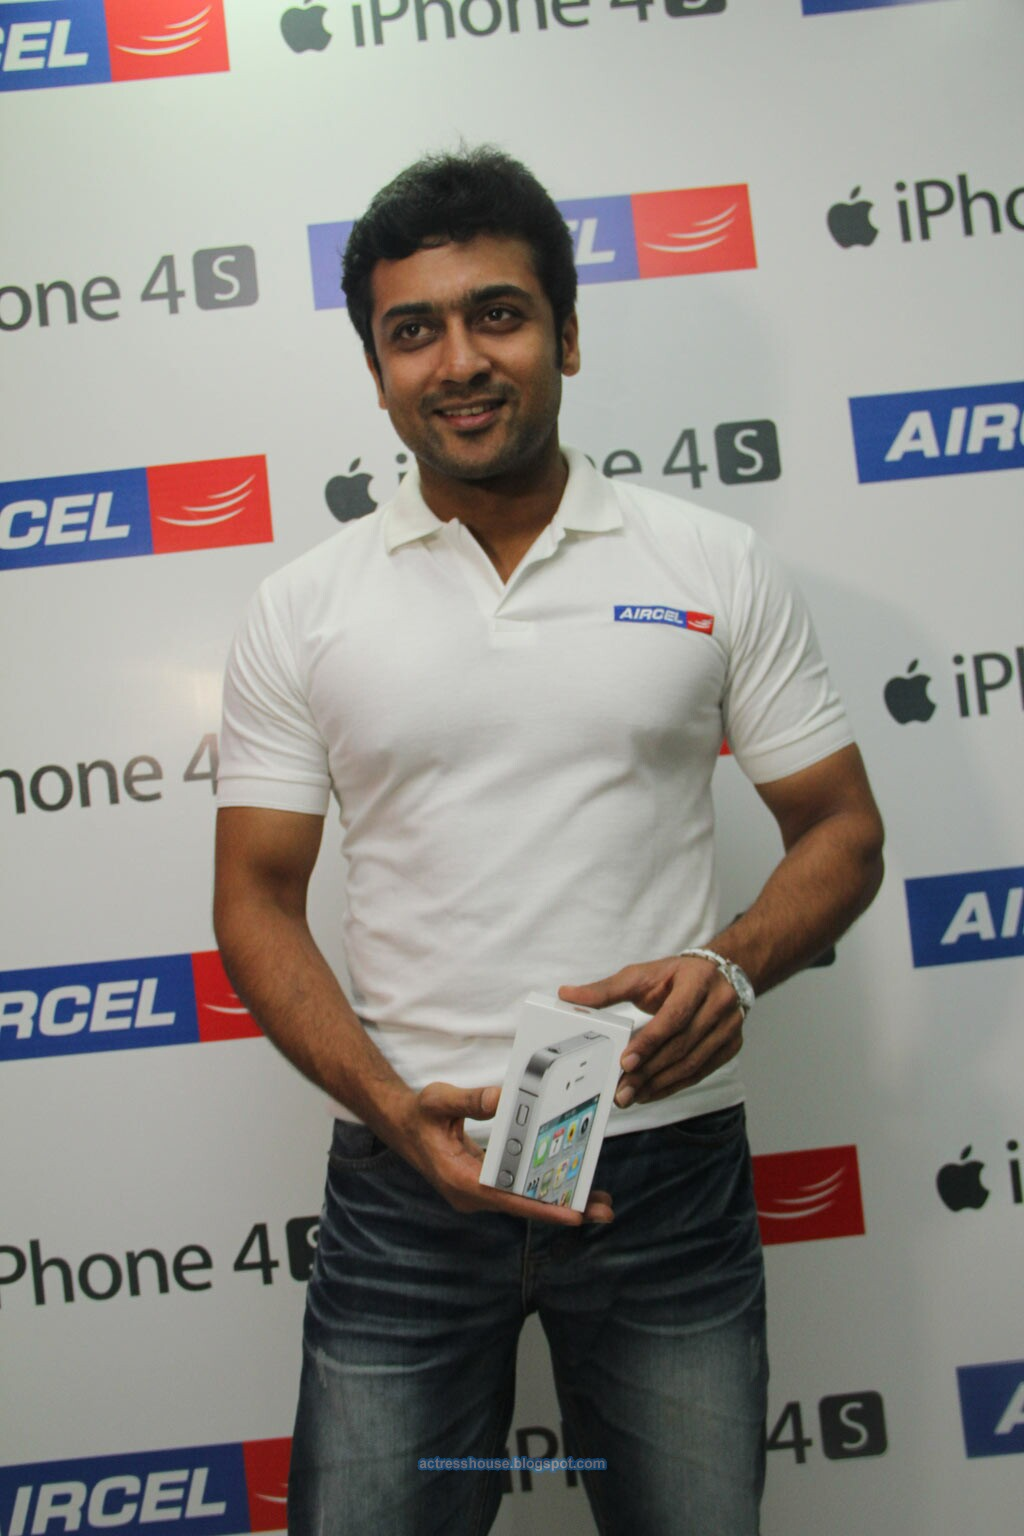 Tamil Actor Surya Launches Aircel Iphone S